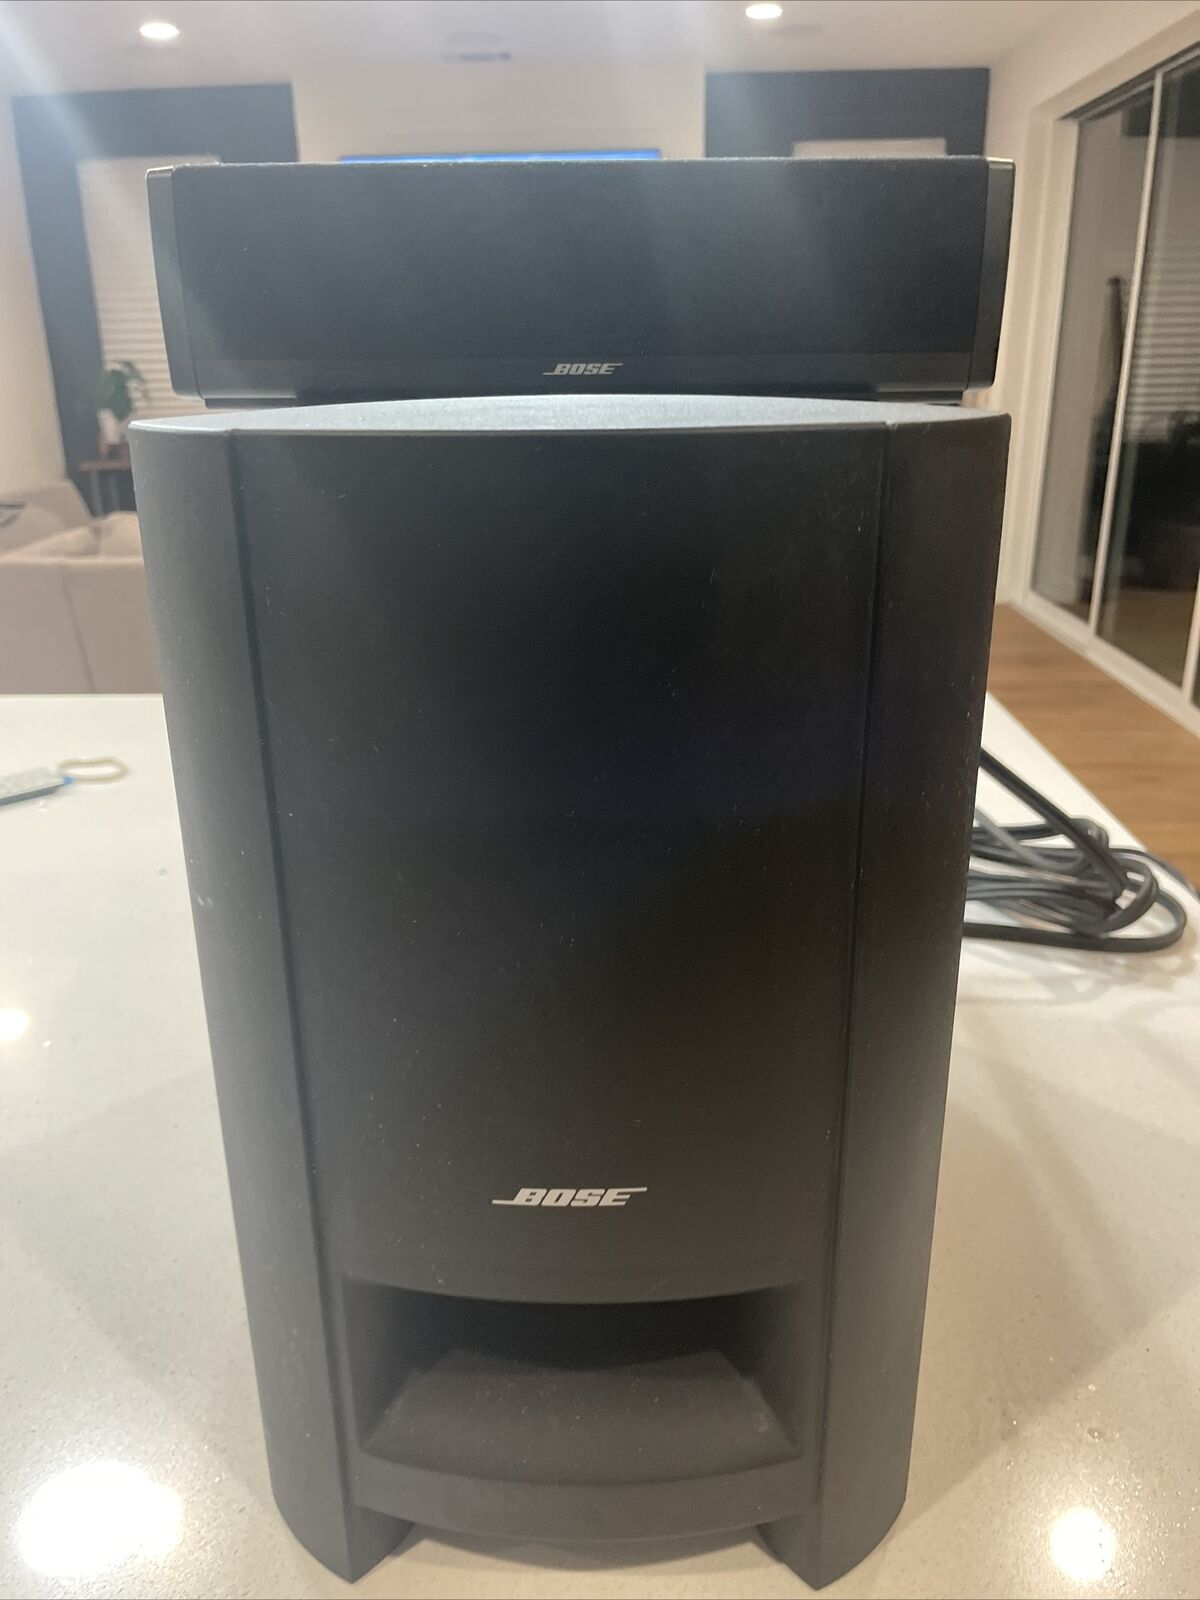 🔥 Bose CineMate 10 Speaker Subwoofer Surround sound. Buy it now for 209.95